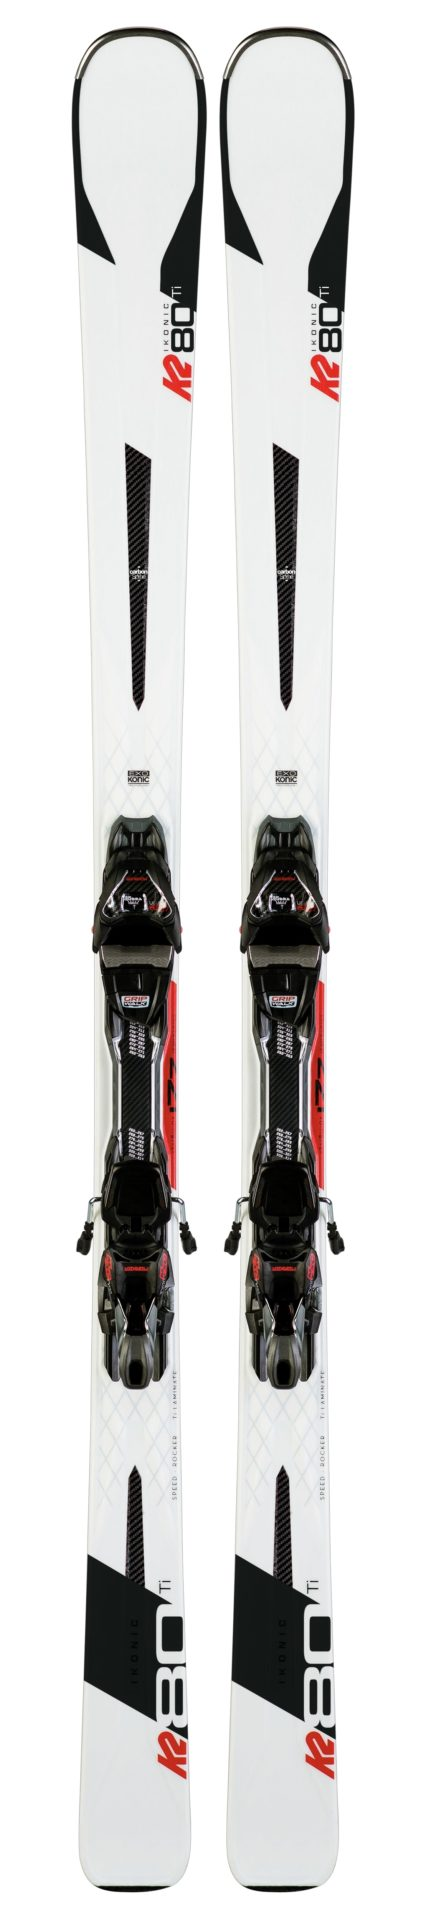 K2 Ikonic 80 Ti Skis w/ XCell 12 TCX L Bindings 2019-20 at Northern Ski Works 1